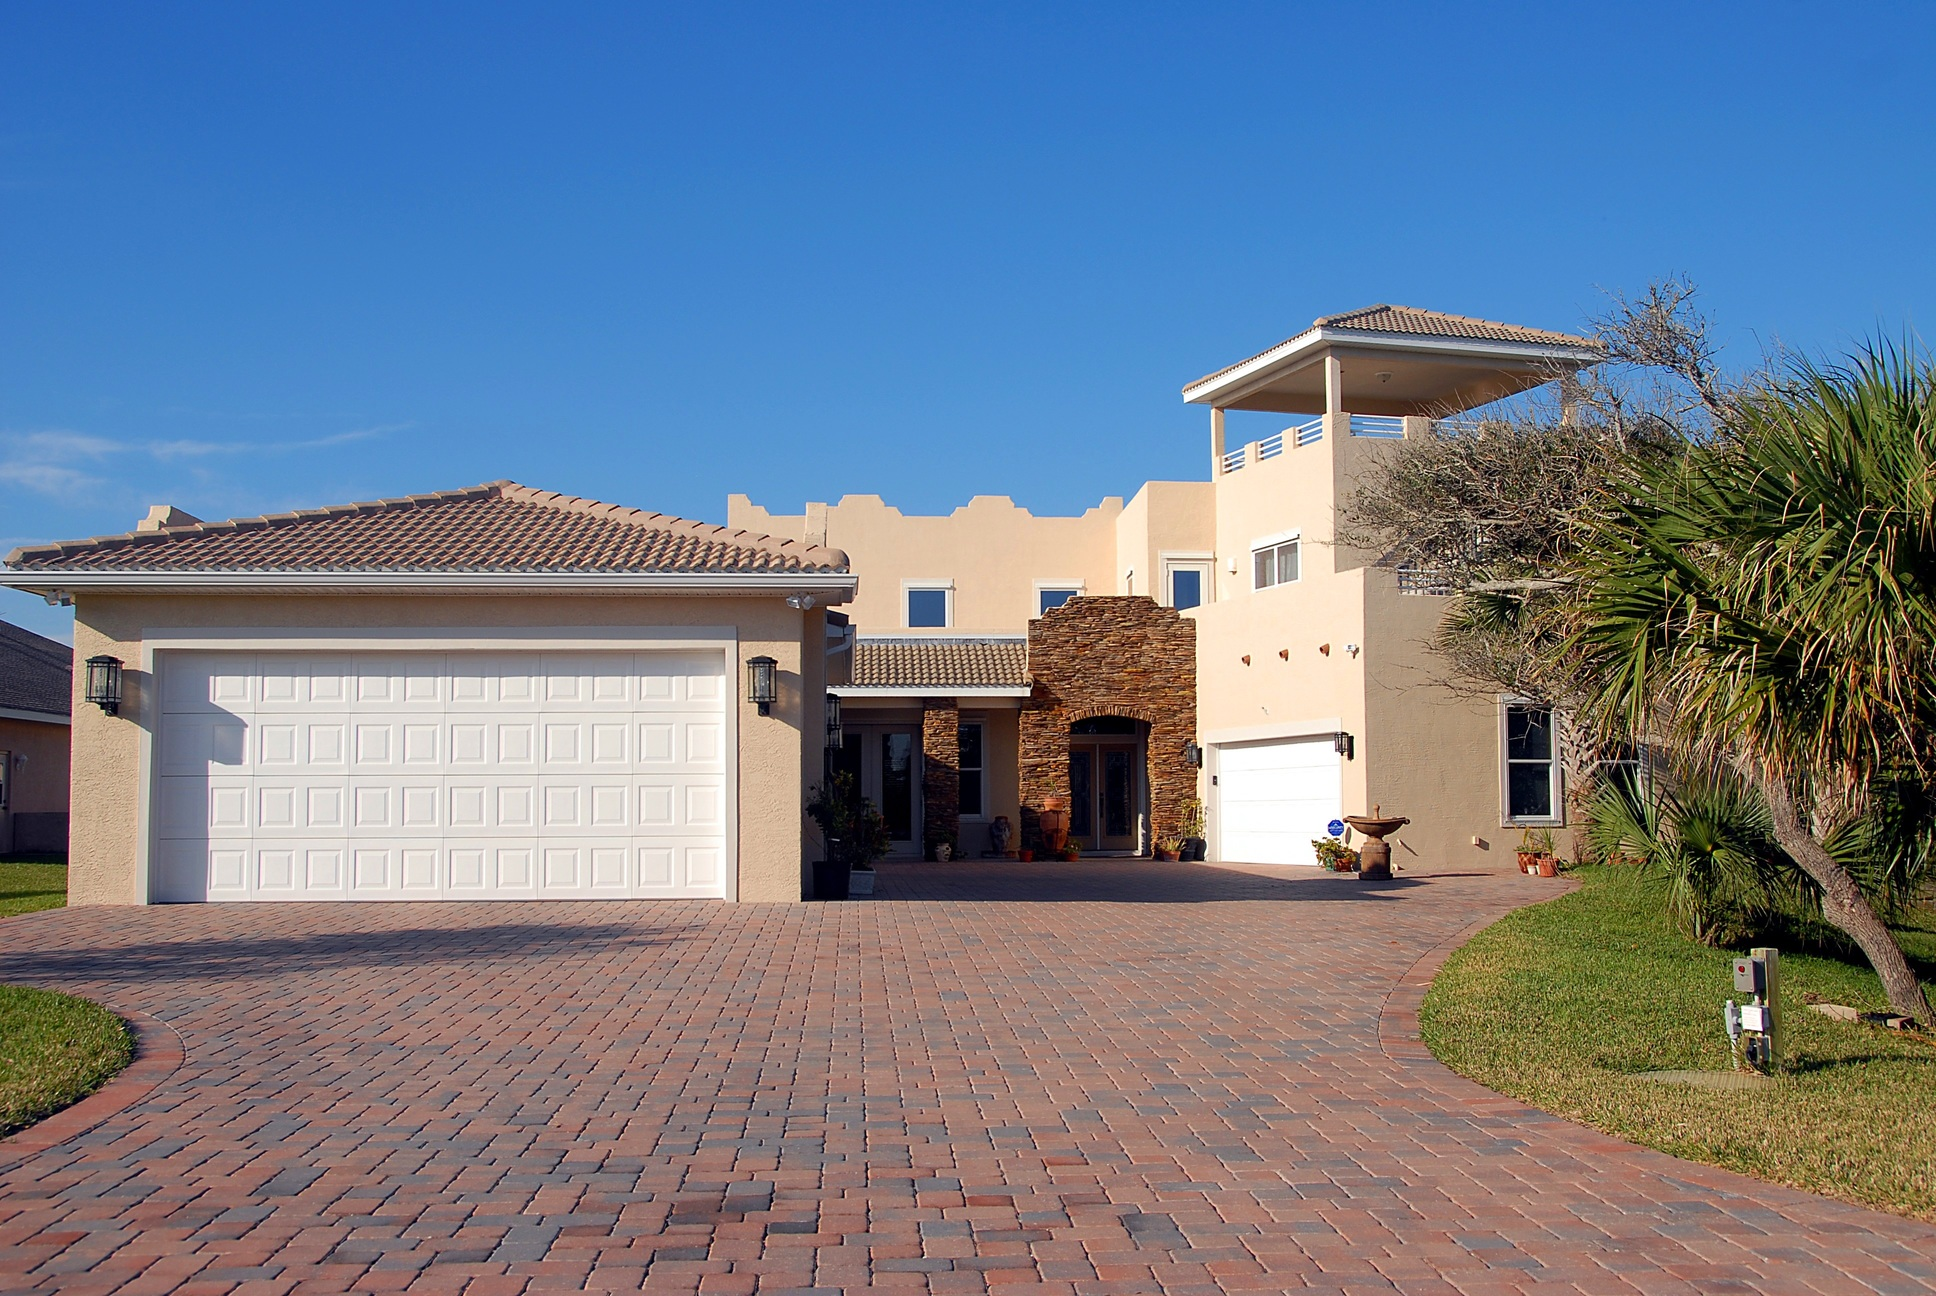 Interlocking driveway in front of beige house and blue sky